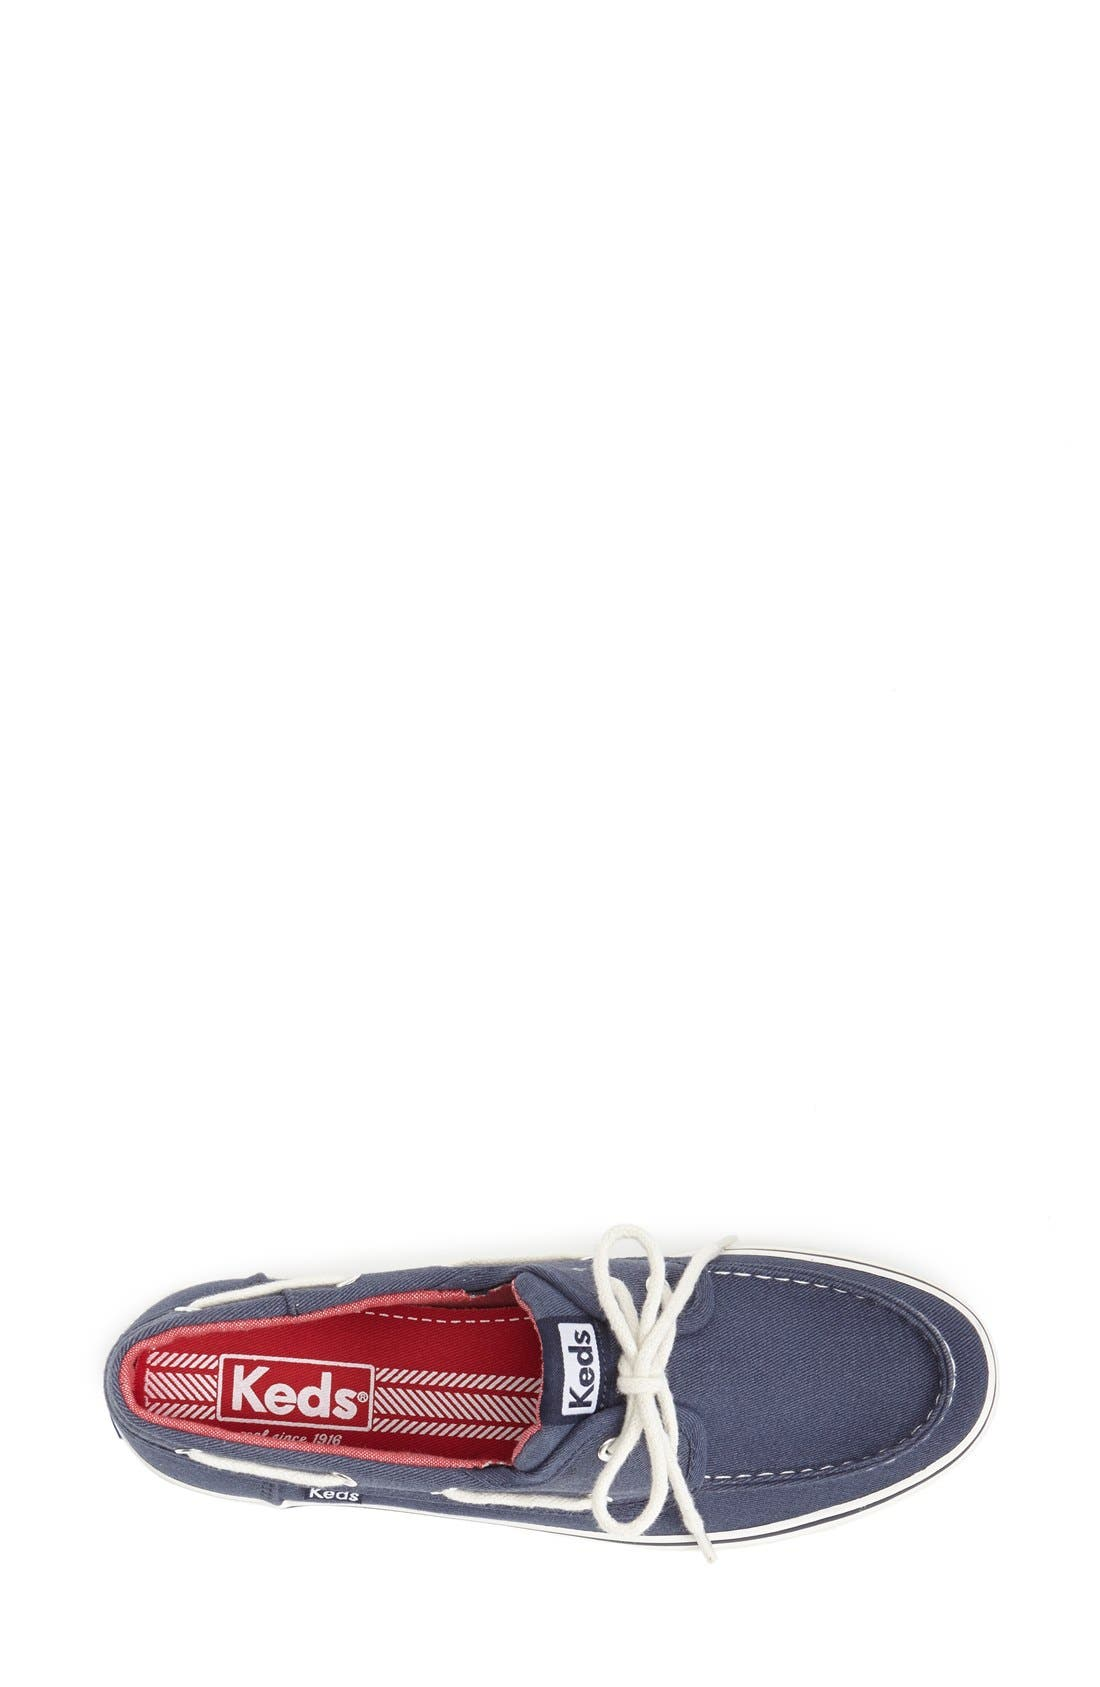 Alternate Image 3  - Keds® 'Bay Bird' Boat Shoe Sneaker (Women)